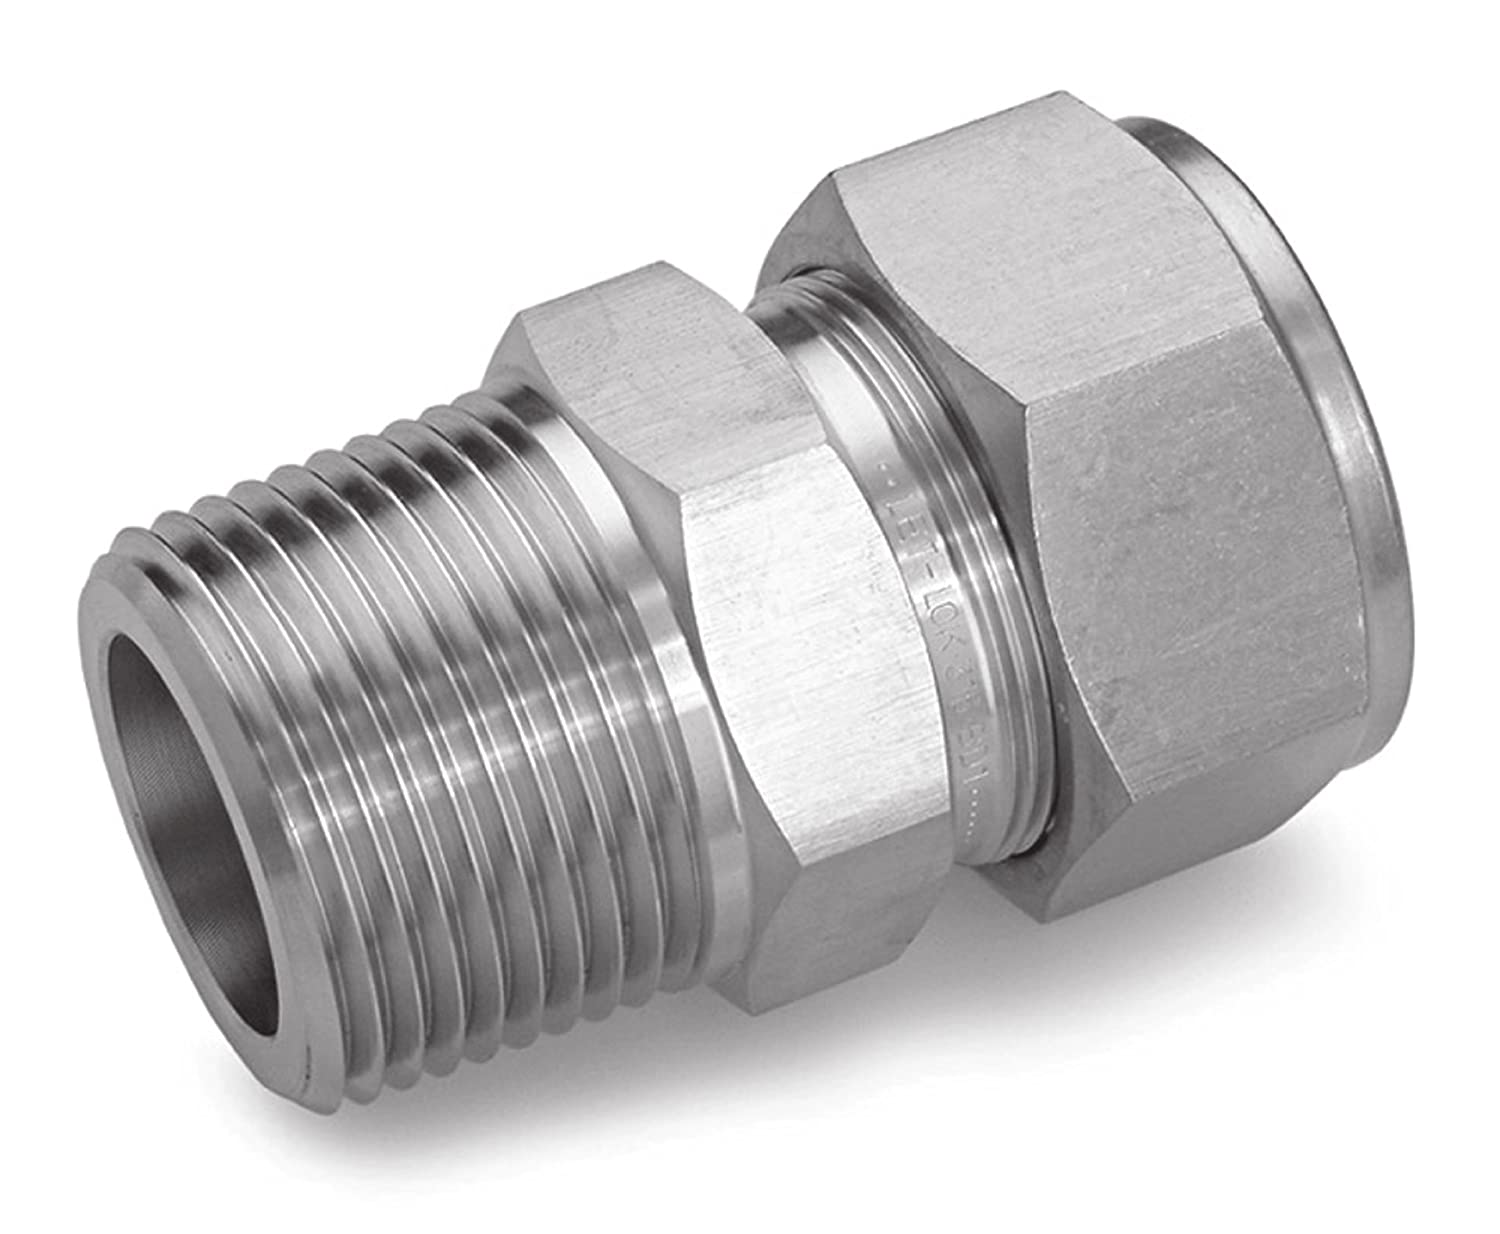 Ham-Let 3001995 Stainless Steel 316 Let-Lok Compression Fitting Adapter 1//8 NPT Male x 1//4 Tube OD